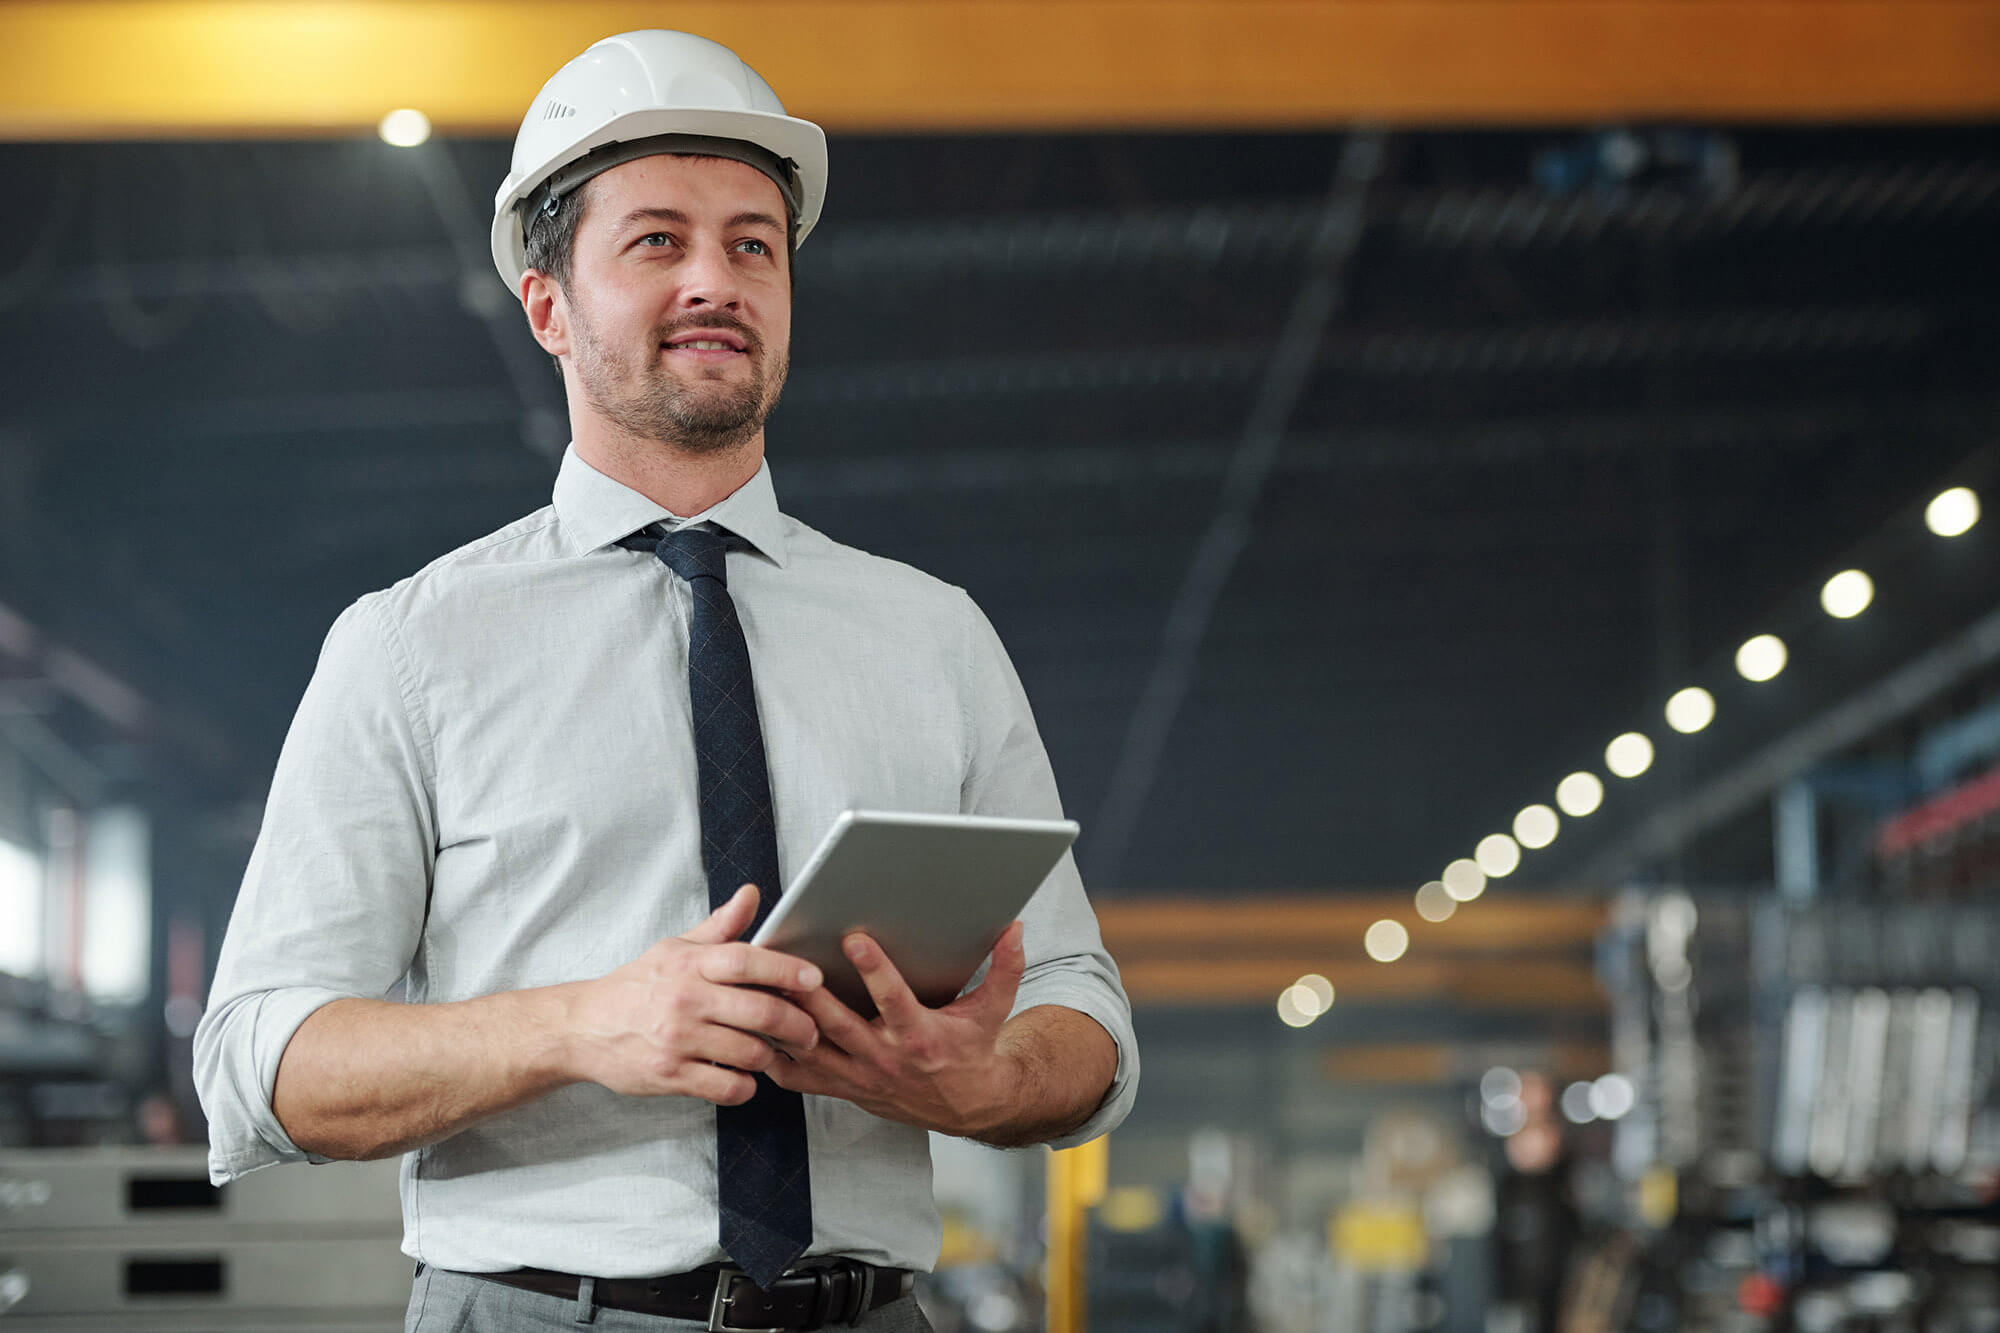 Man in white shirt with black tie and white hard hat walks through building with note pad